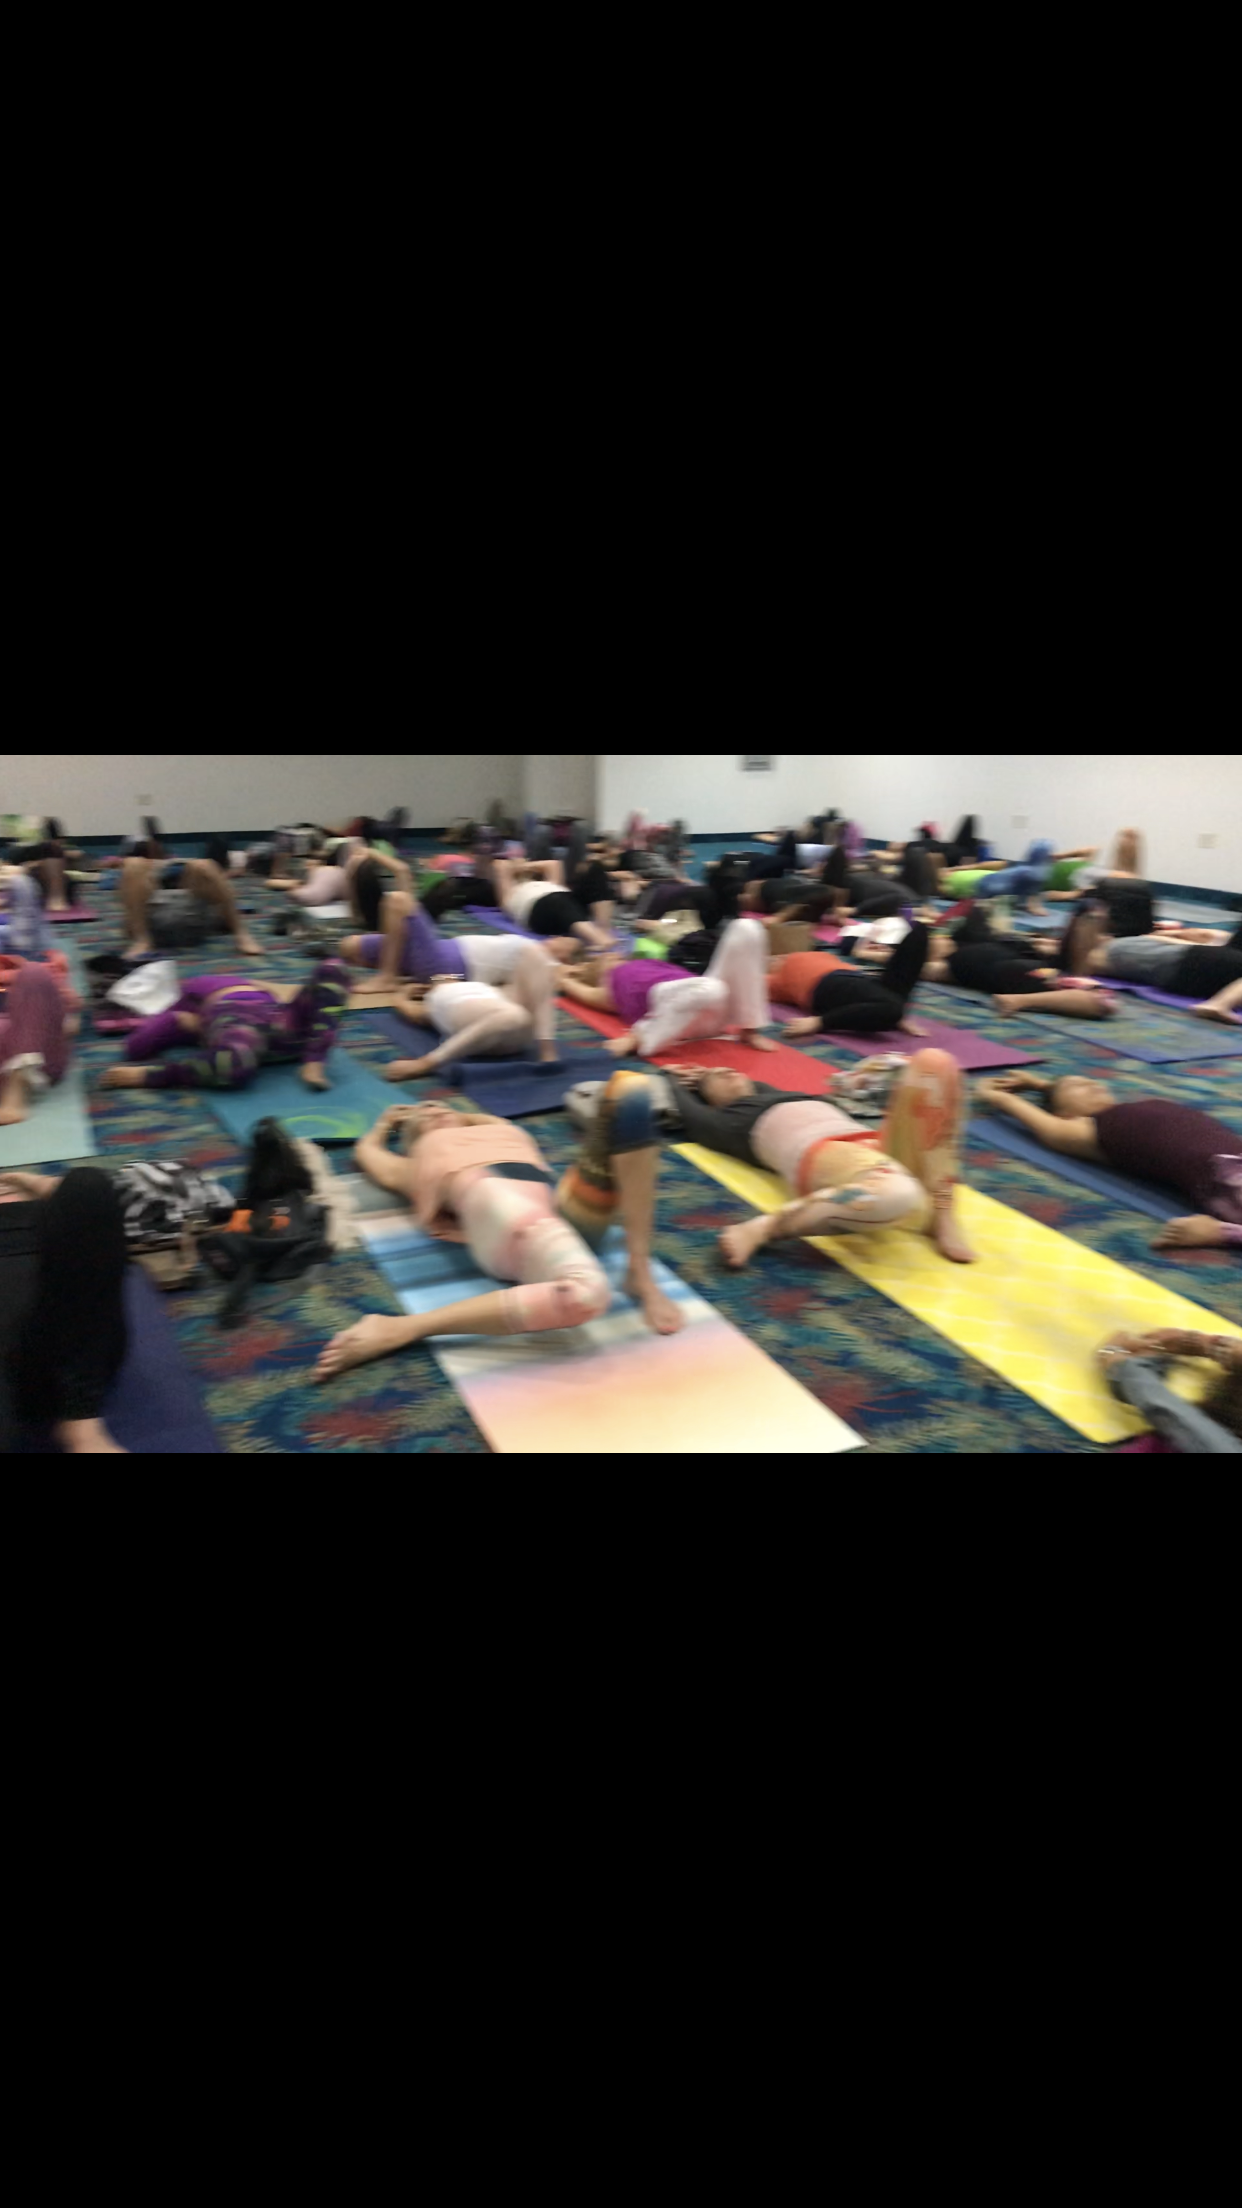 The Yoga Expo Florida, USA